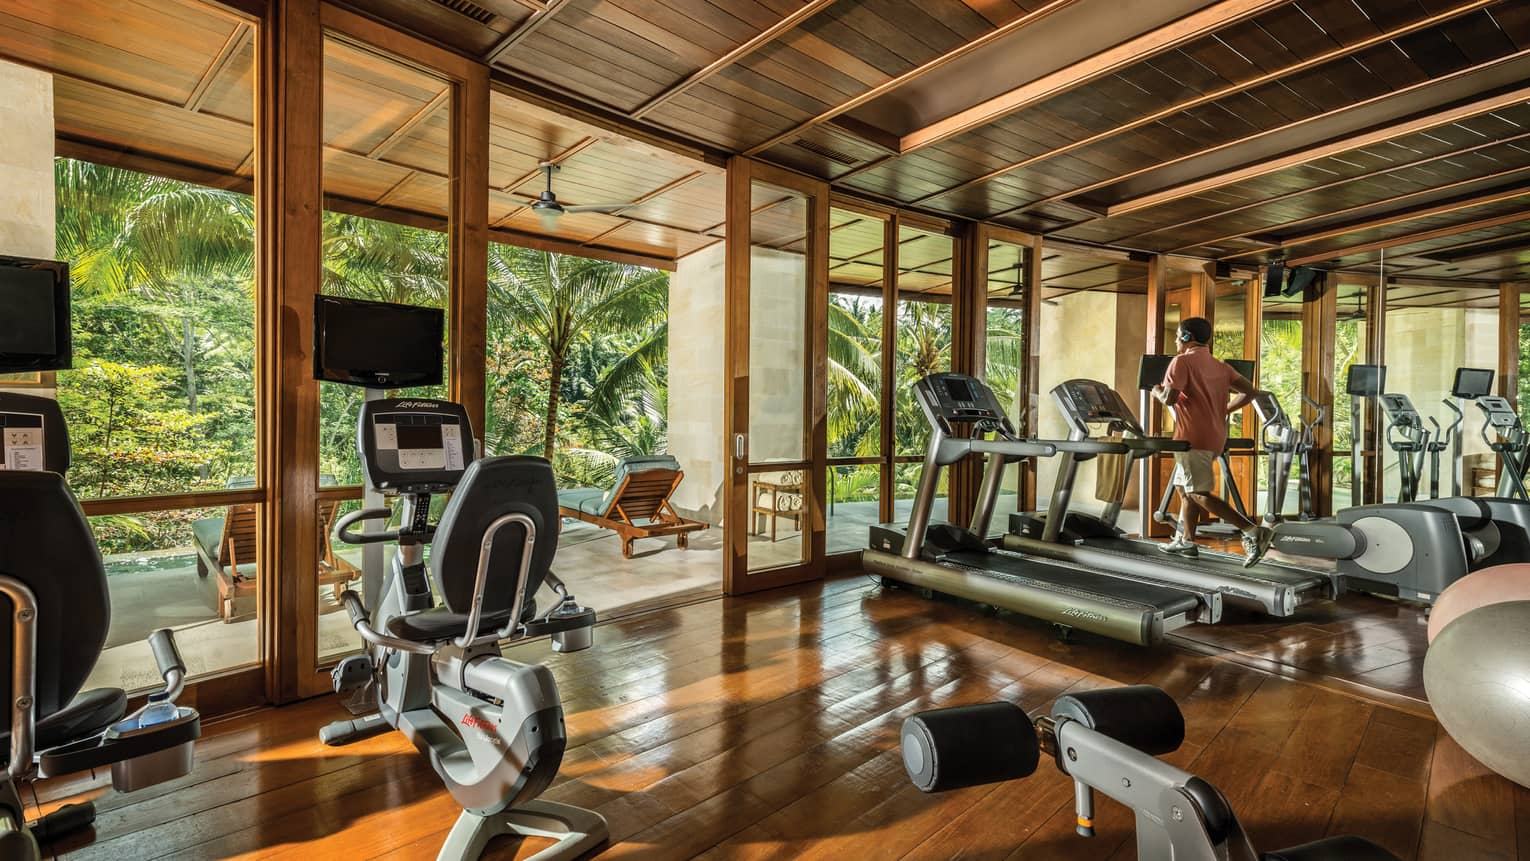 Sunny gym with fitness equipment, cardio machines, man running on treadmill near open door